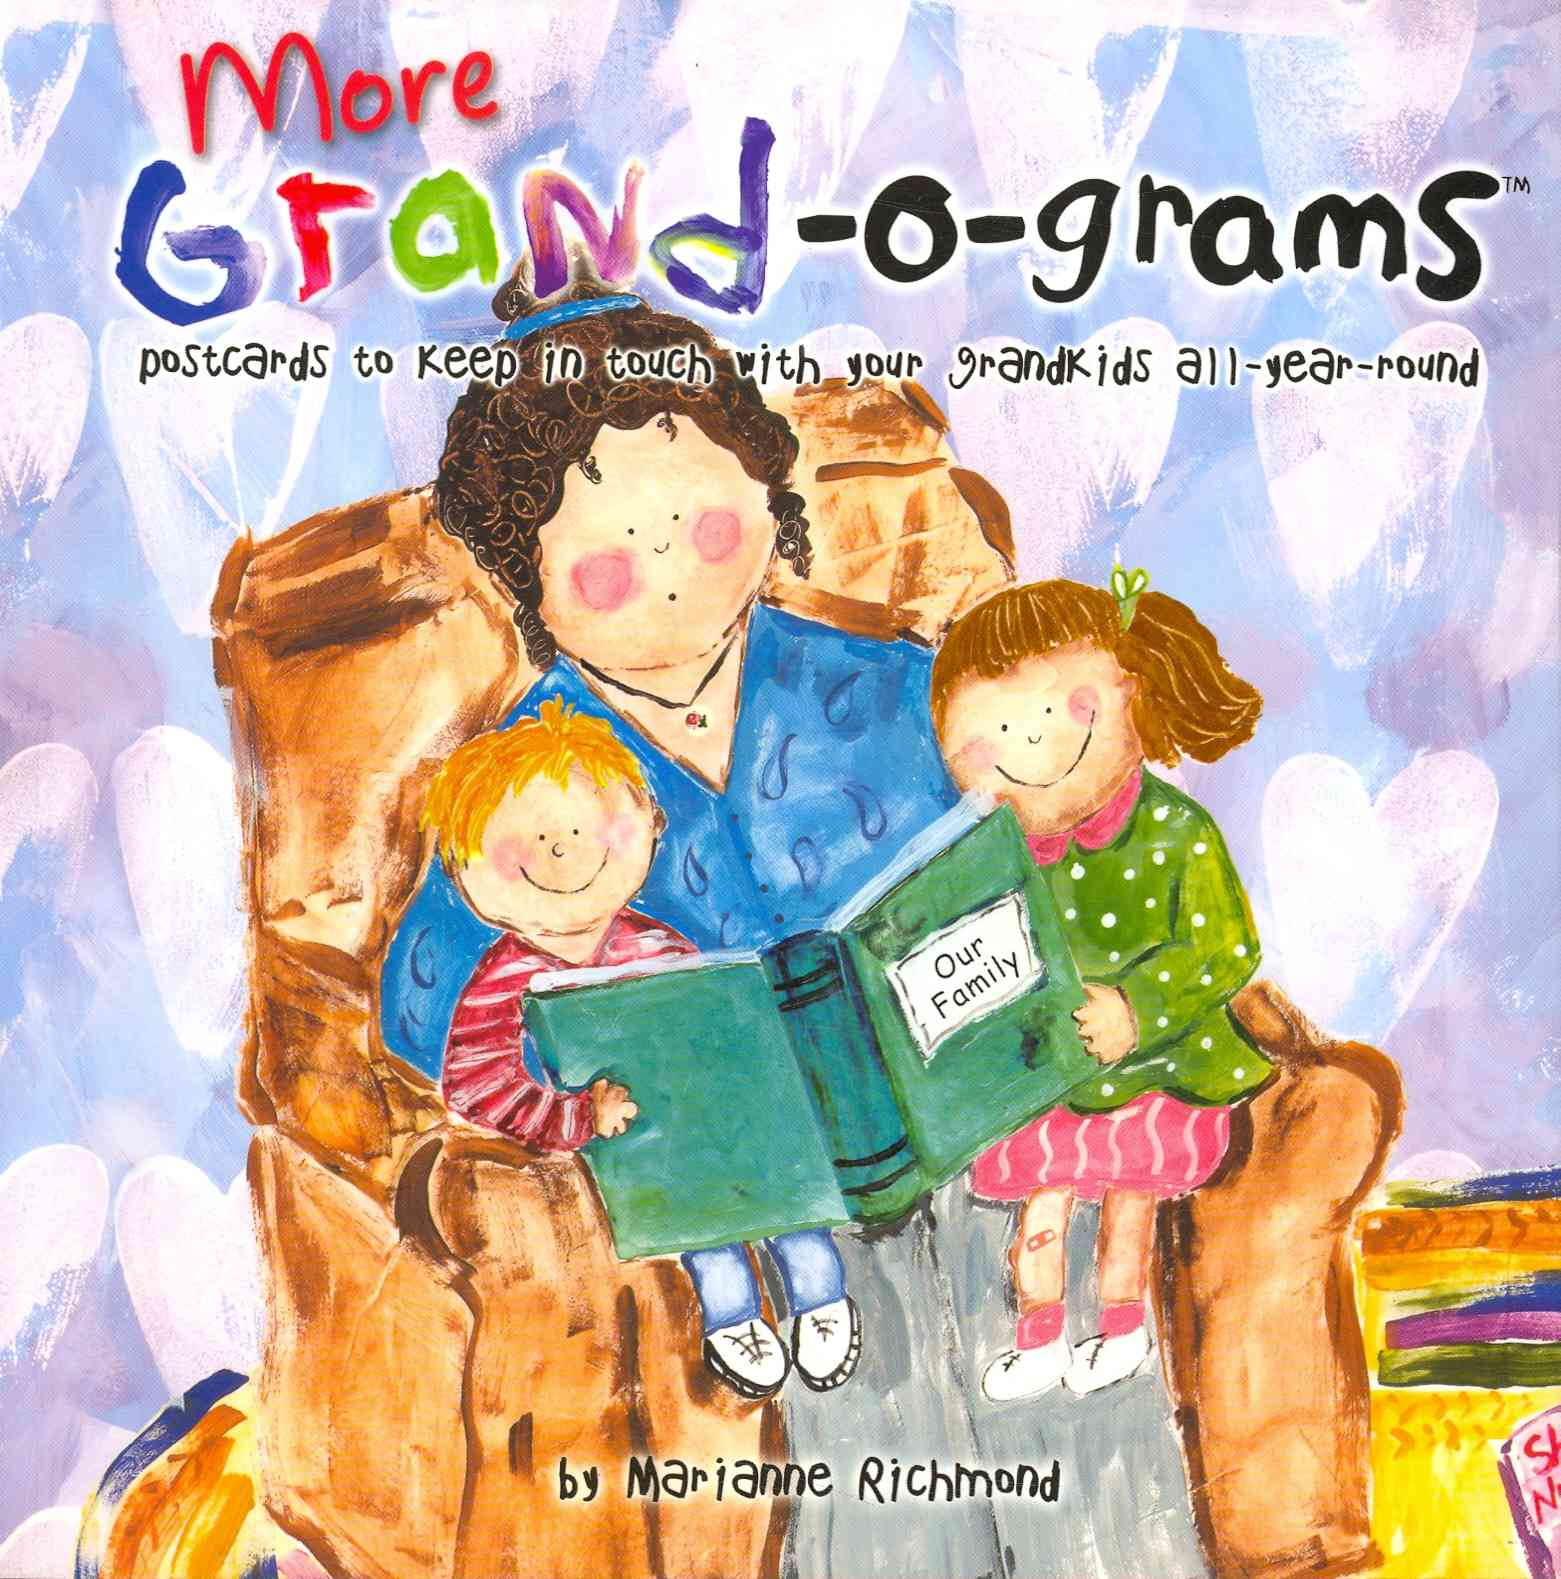 More Grand-o-Grams: Postcards to Keep in Touch With Your Grandkids All-Year-Round (Paperback)